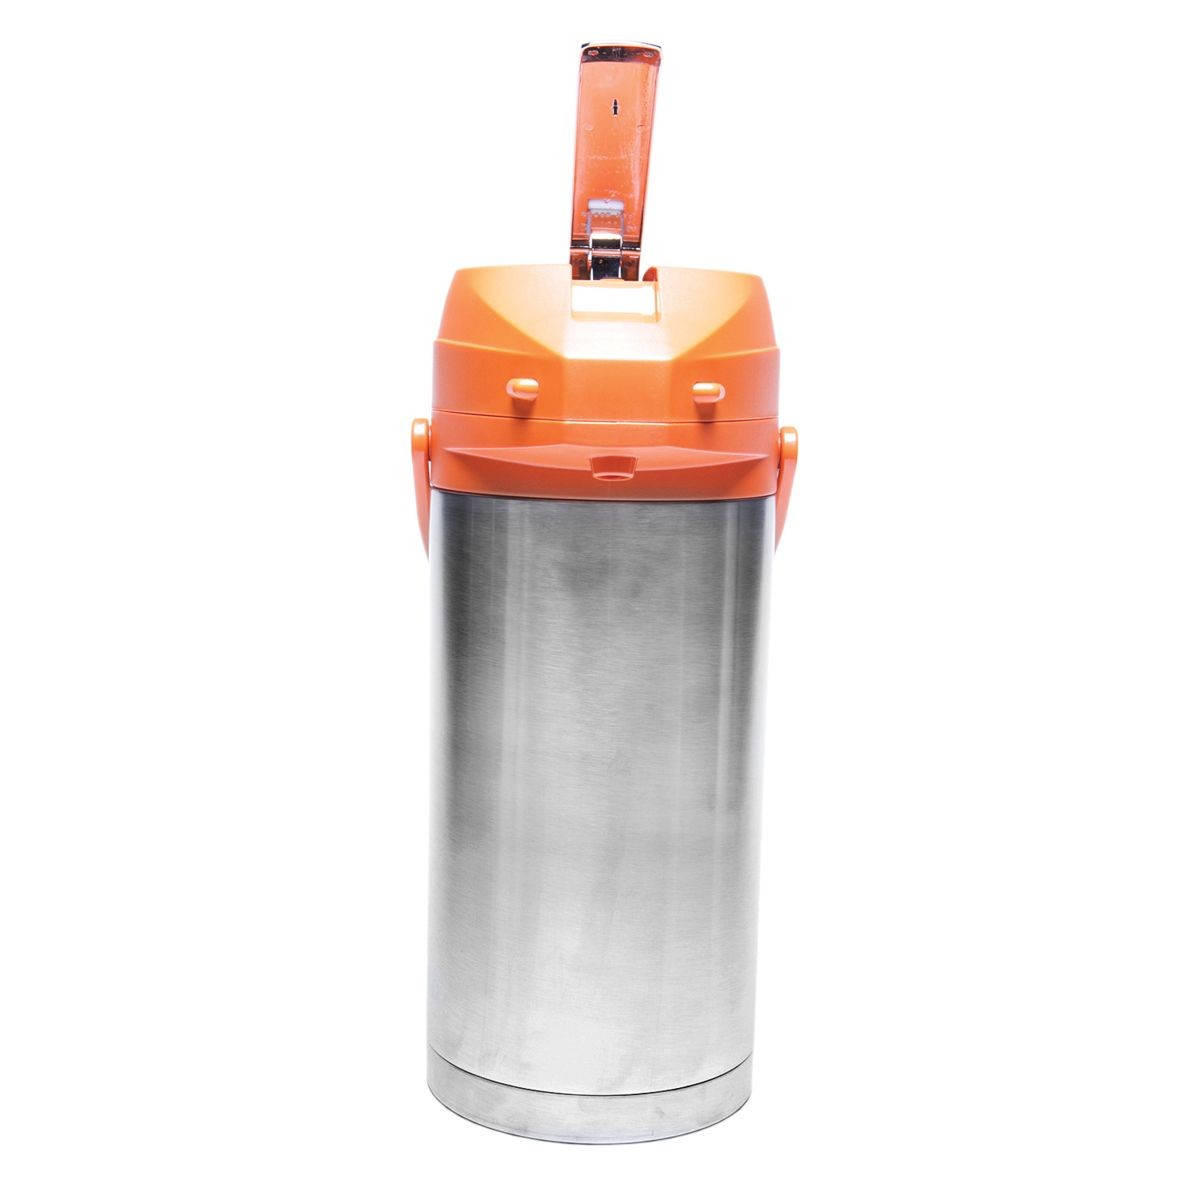 Service Ideas CTAL37OR Orange Top Stainless Steel Lined Color Me SVAC Airpot, 3.7 Liter